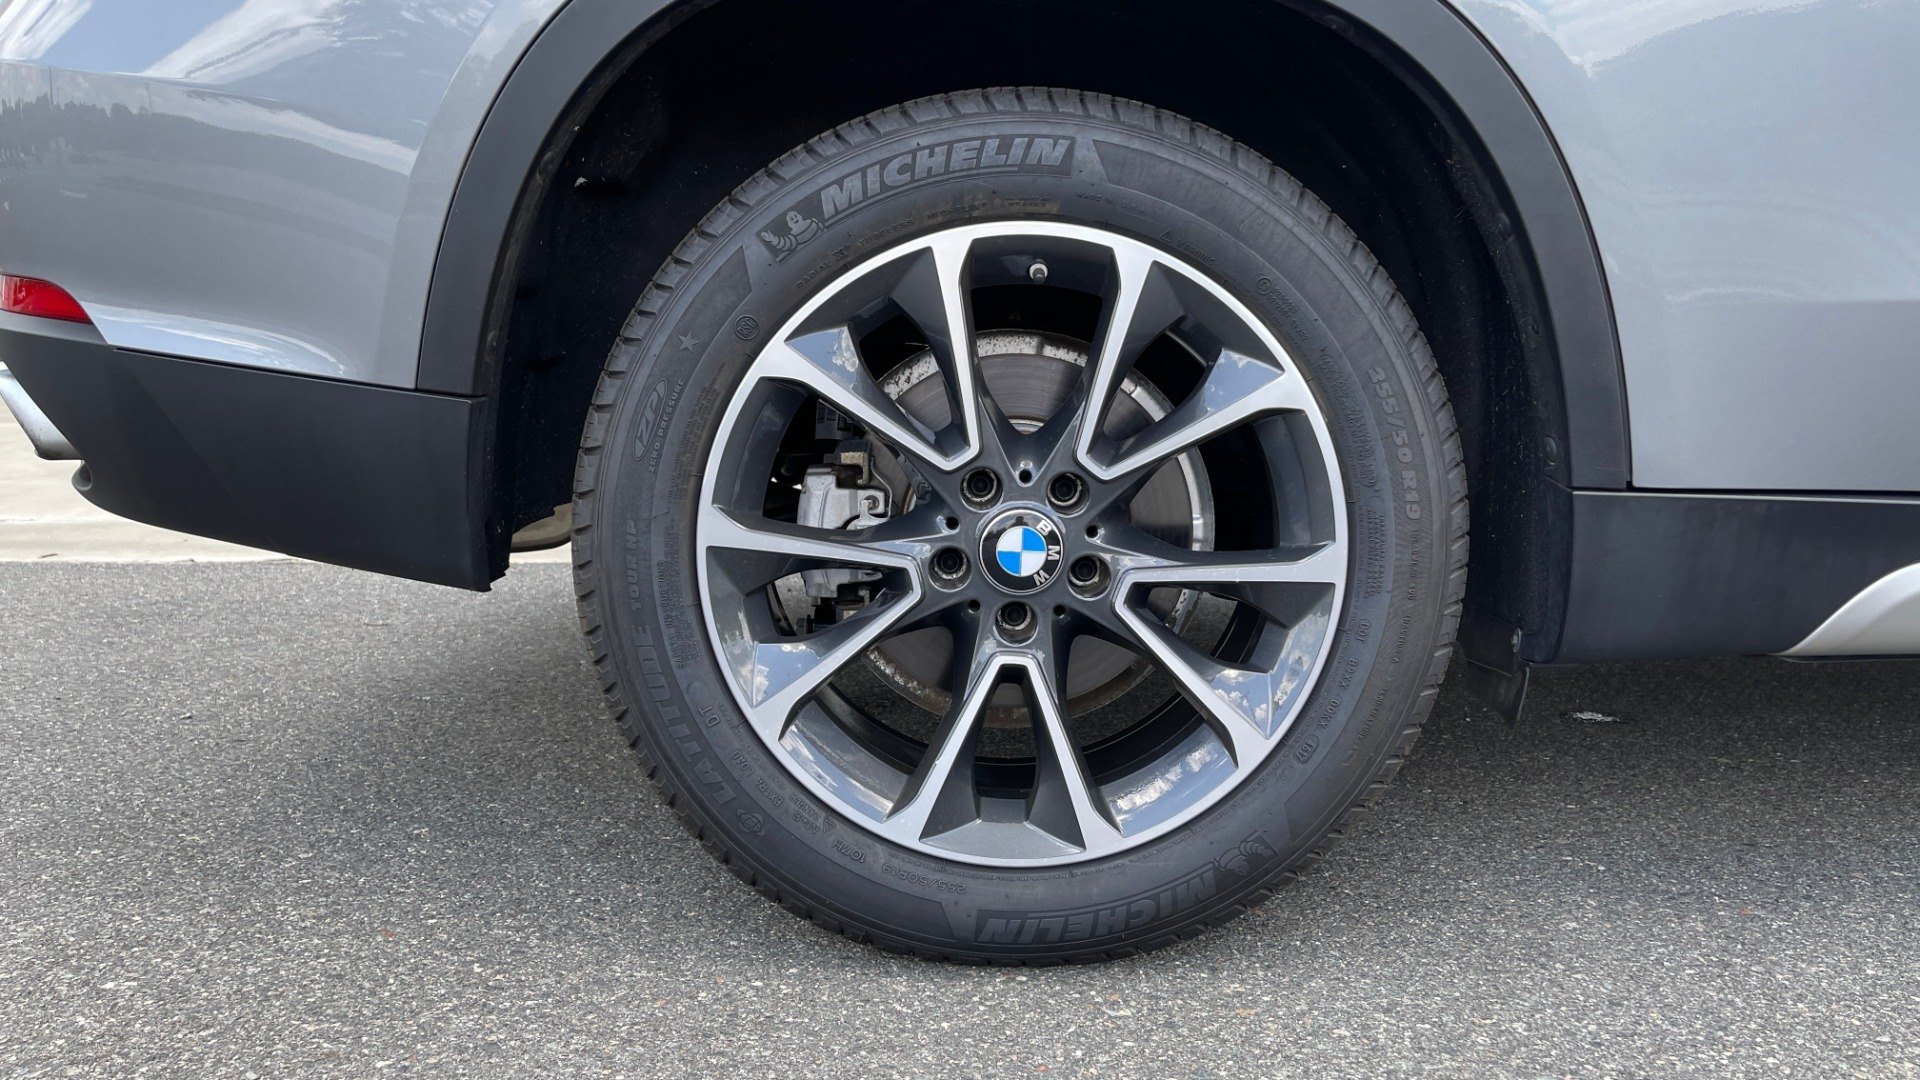 Used 2018 BMW X5 XDRIVE35I PREMIUM / DRVR ASST / WIRELESS CHARGING / CAMERAS for sale $46,995 at Formula Imports in Charlotte NC 28227 84